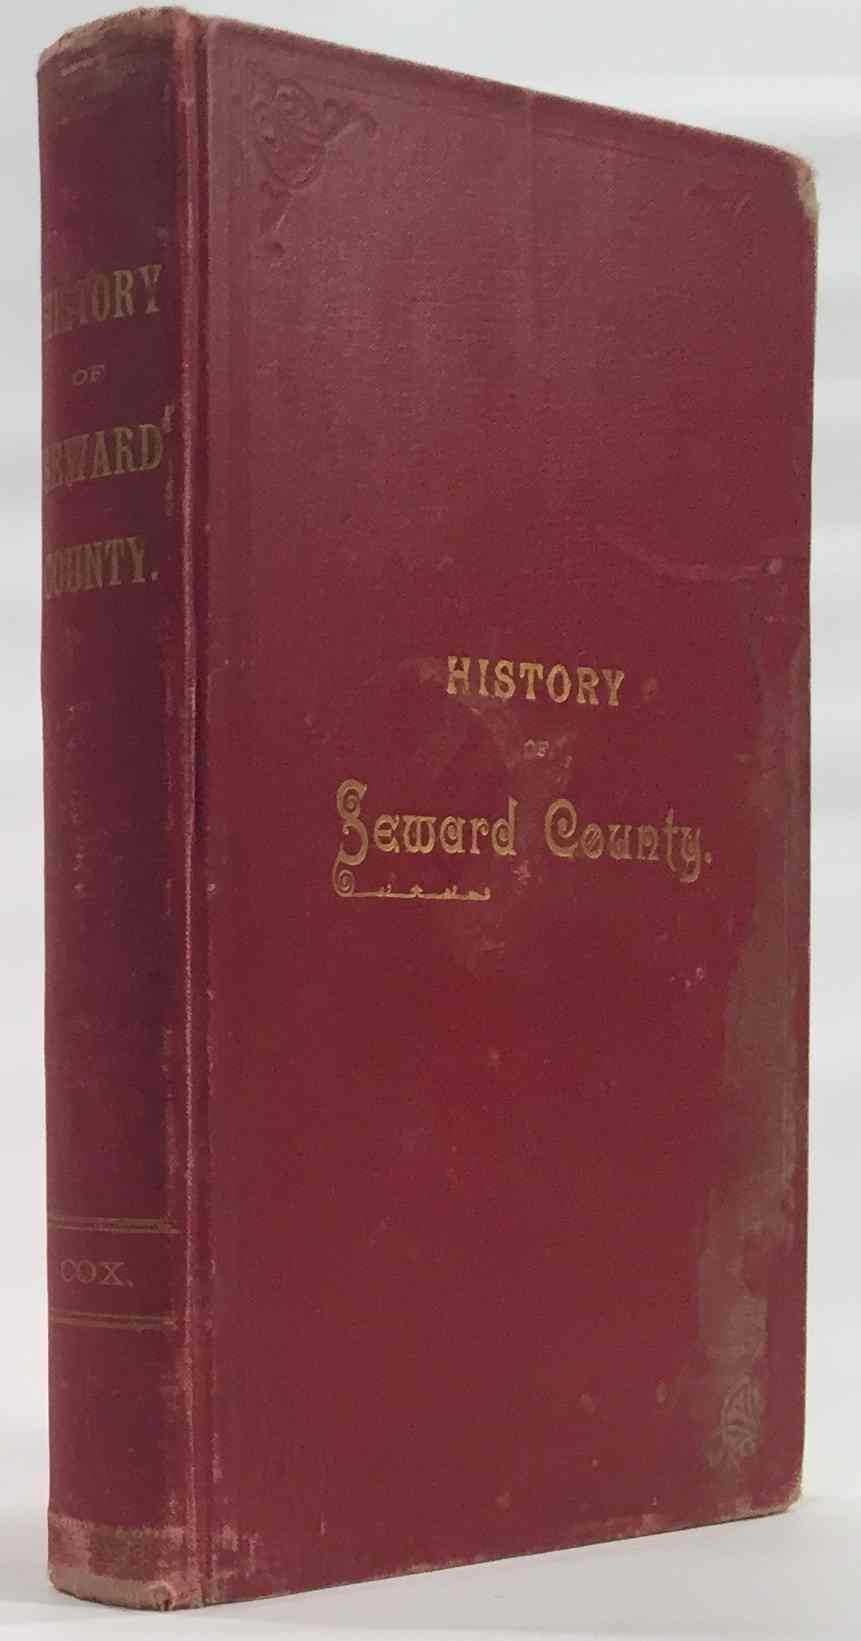 Image for History of Seward County, Nebraska Together with a Chapter of Reminiscenses of the Early Settlement of Lancaster County